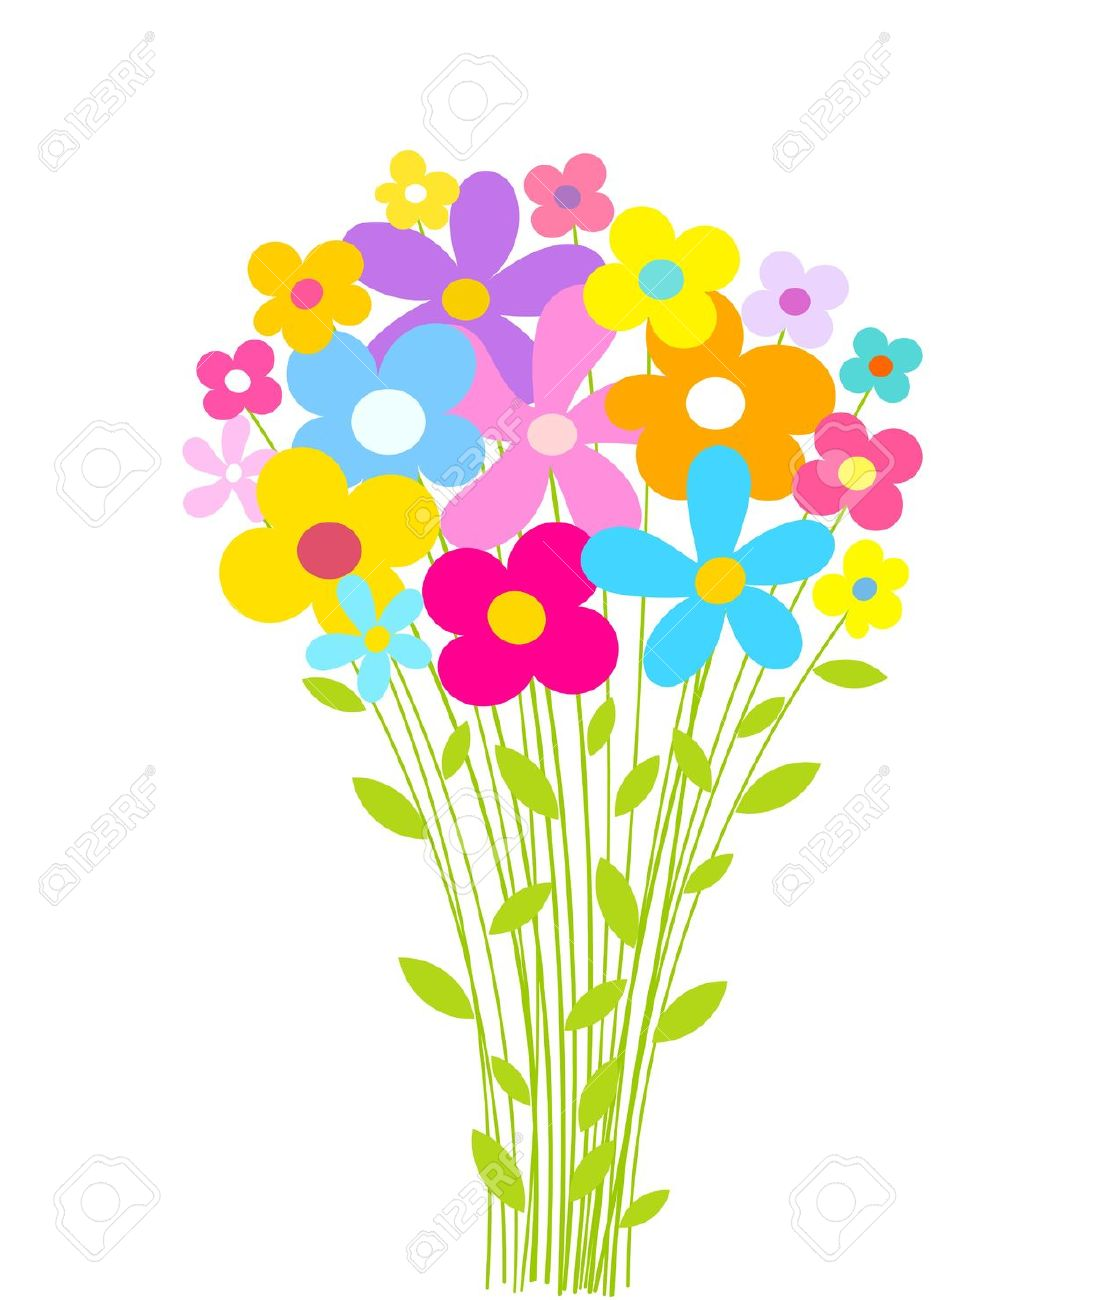 cartoon images flowers clipground